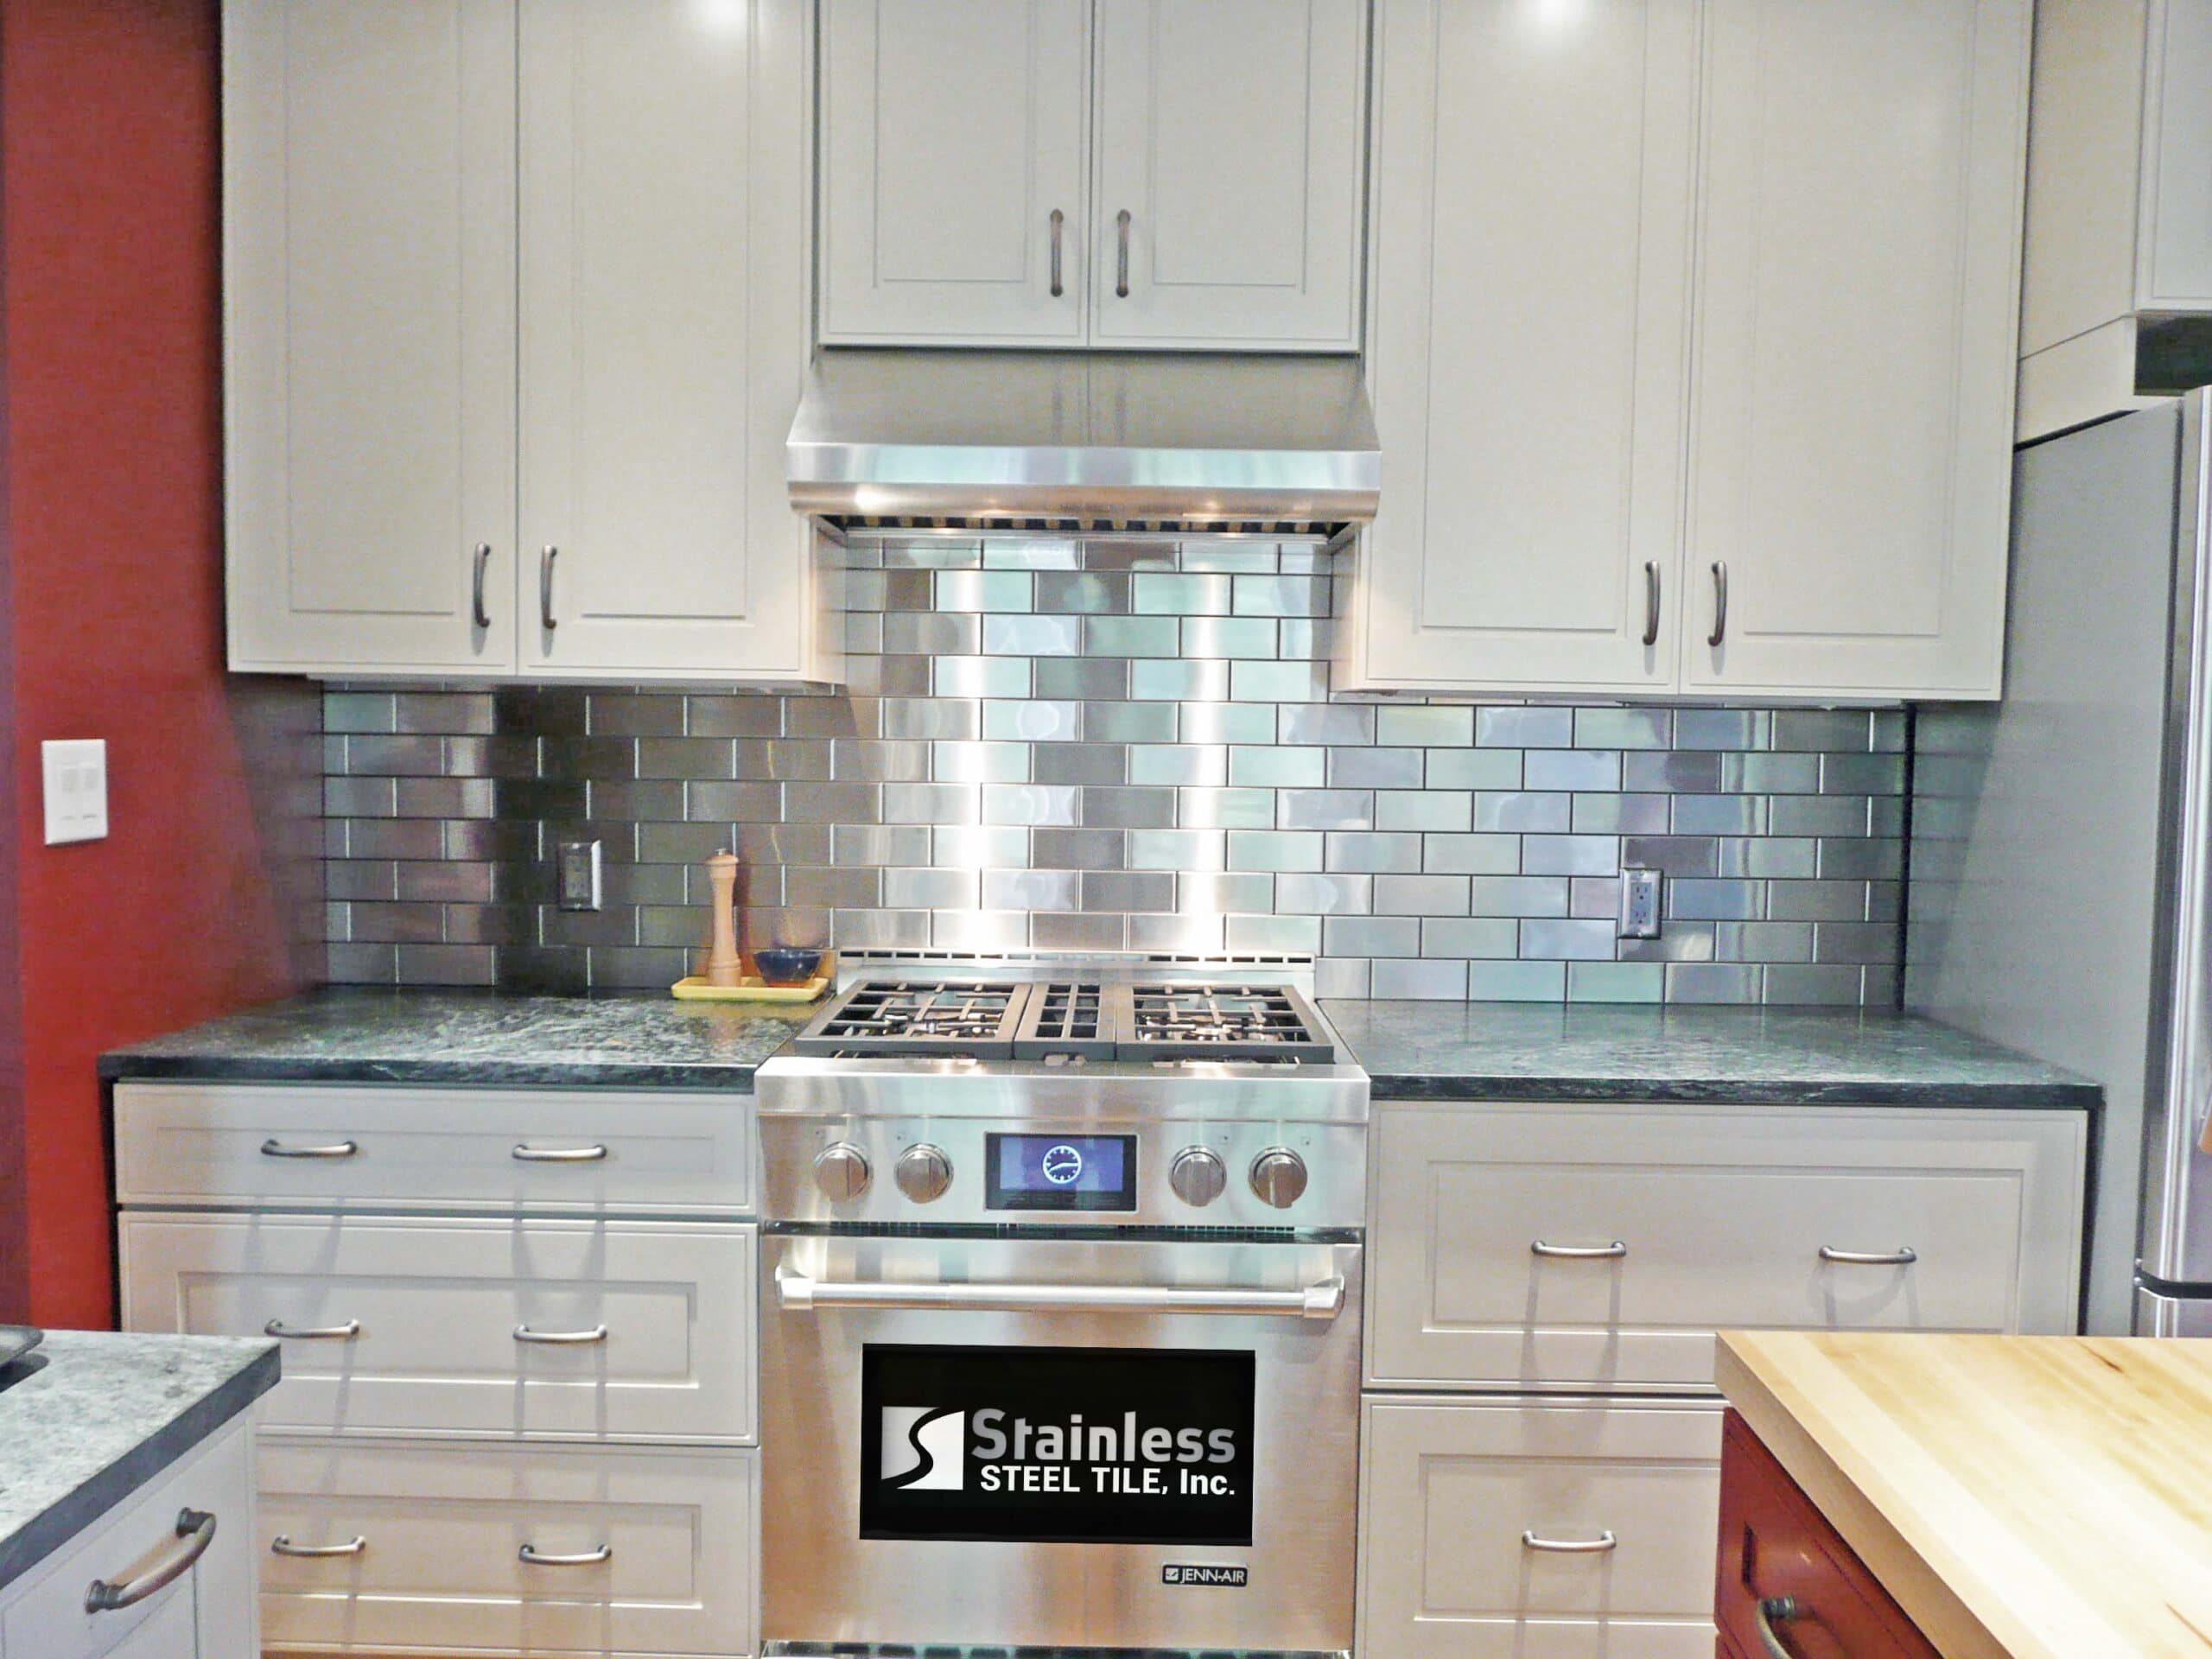 Red Wall Stainless Steel Tile backsplash